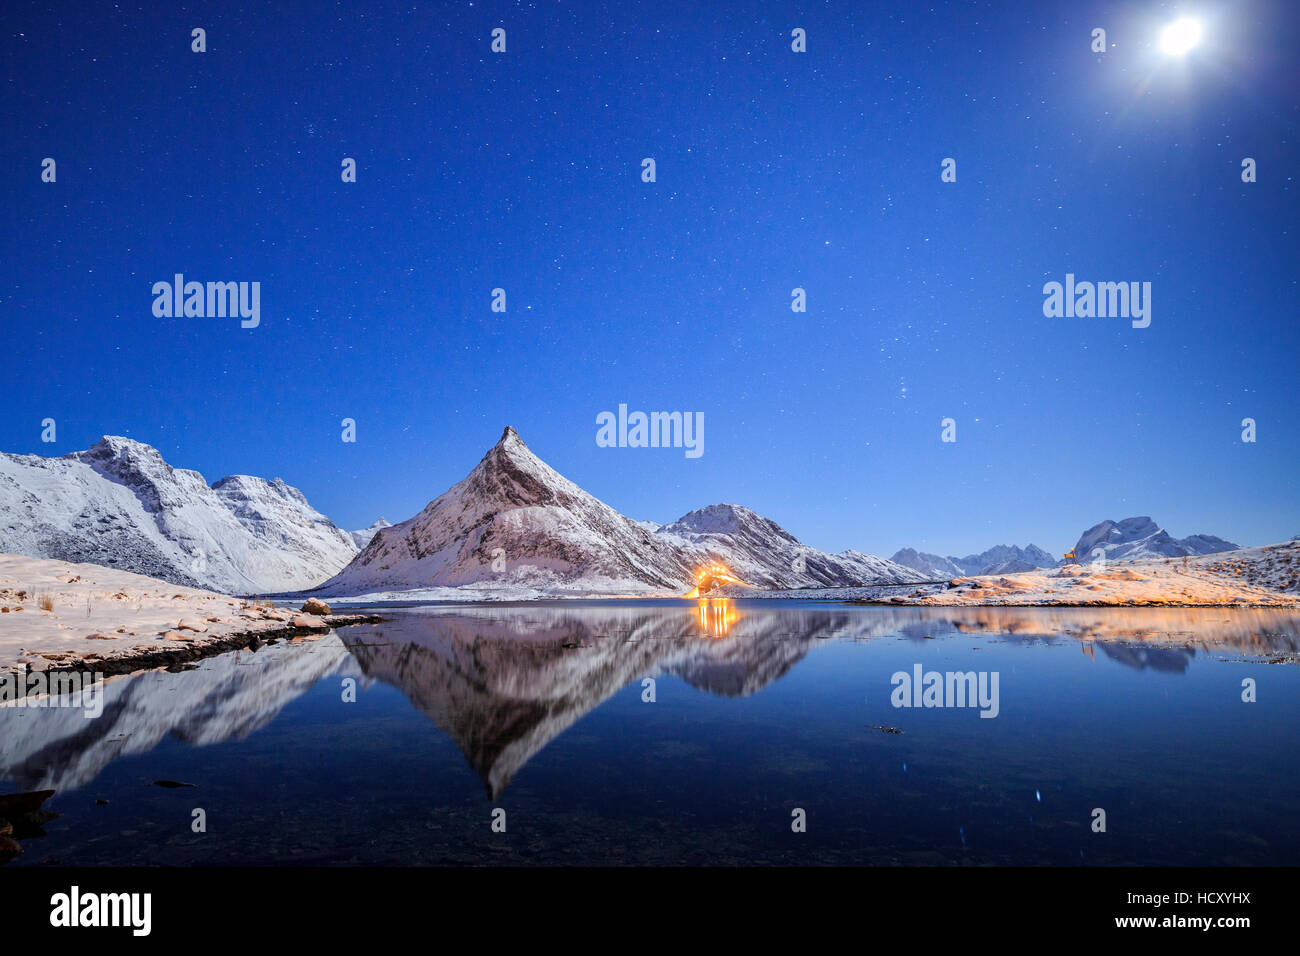 Full moon and stars light up the snow capped peaks reflected in sea, Volanstinden, Fredvang, Lofoten Islands, Northern - Stock Image